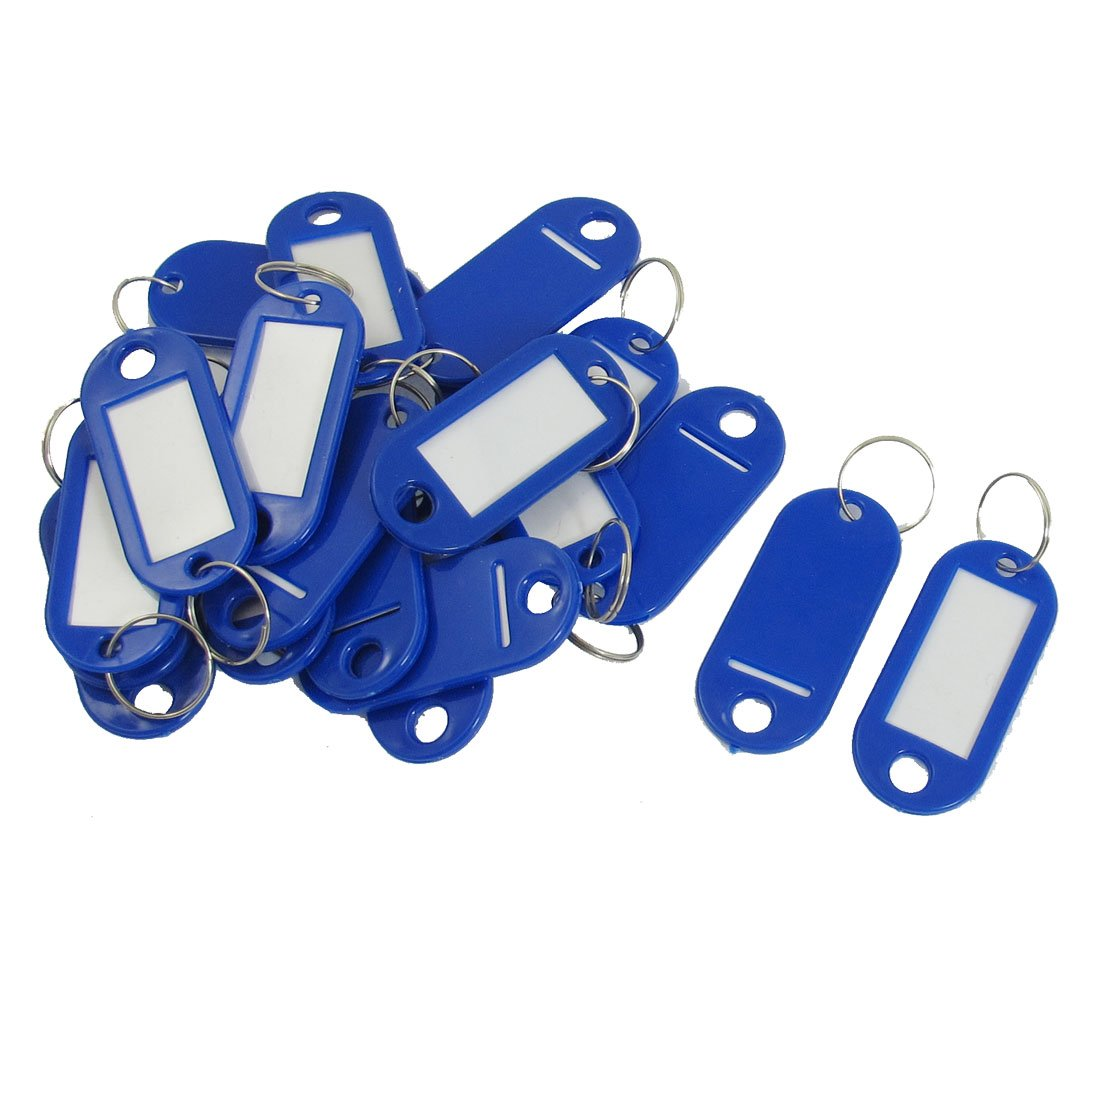 Promotion! 20 Pcs Key ID Label Tags Split Ring Keyring Keychain Blue